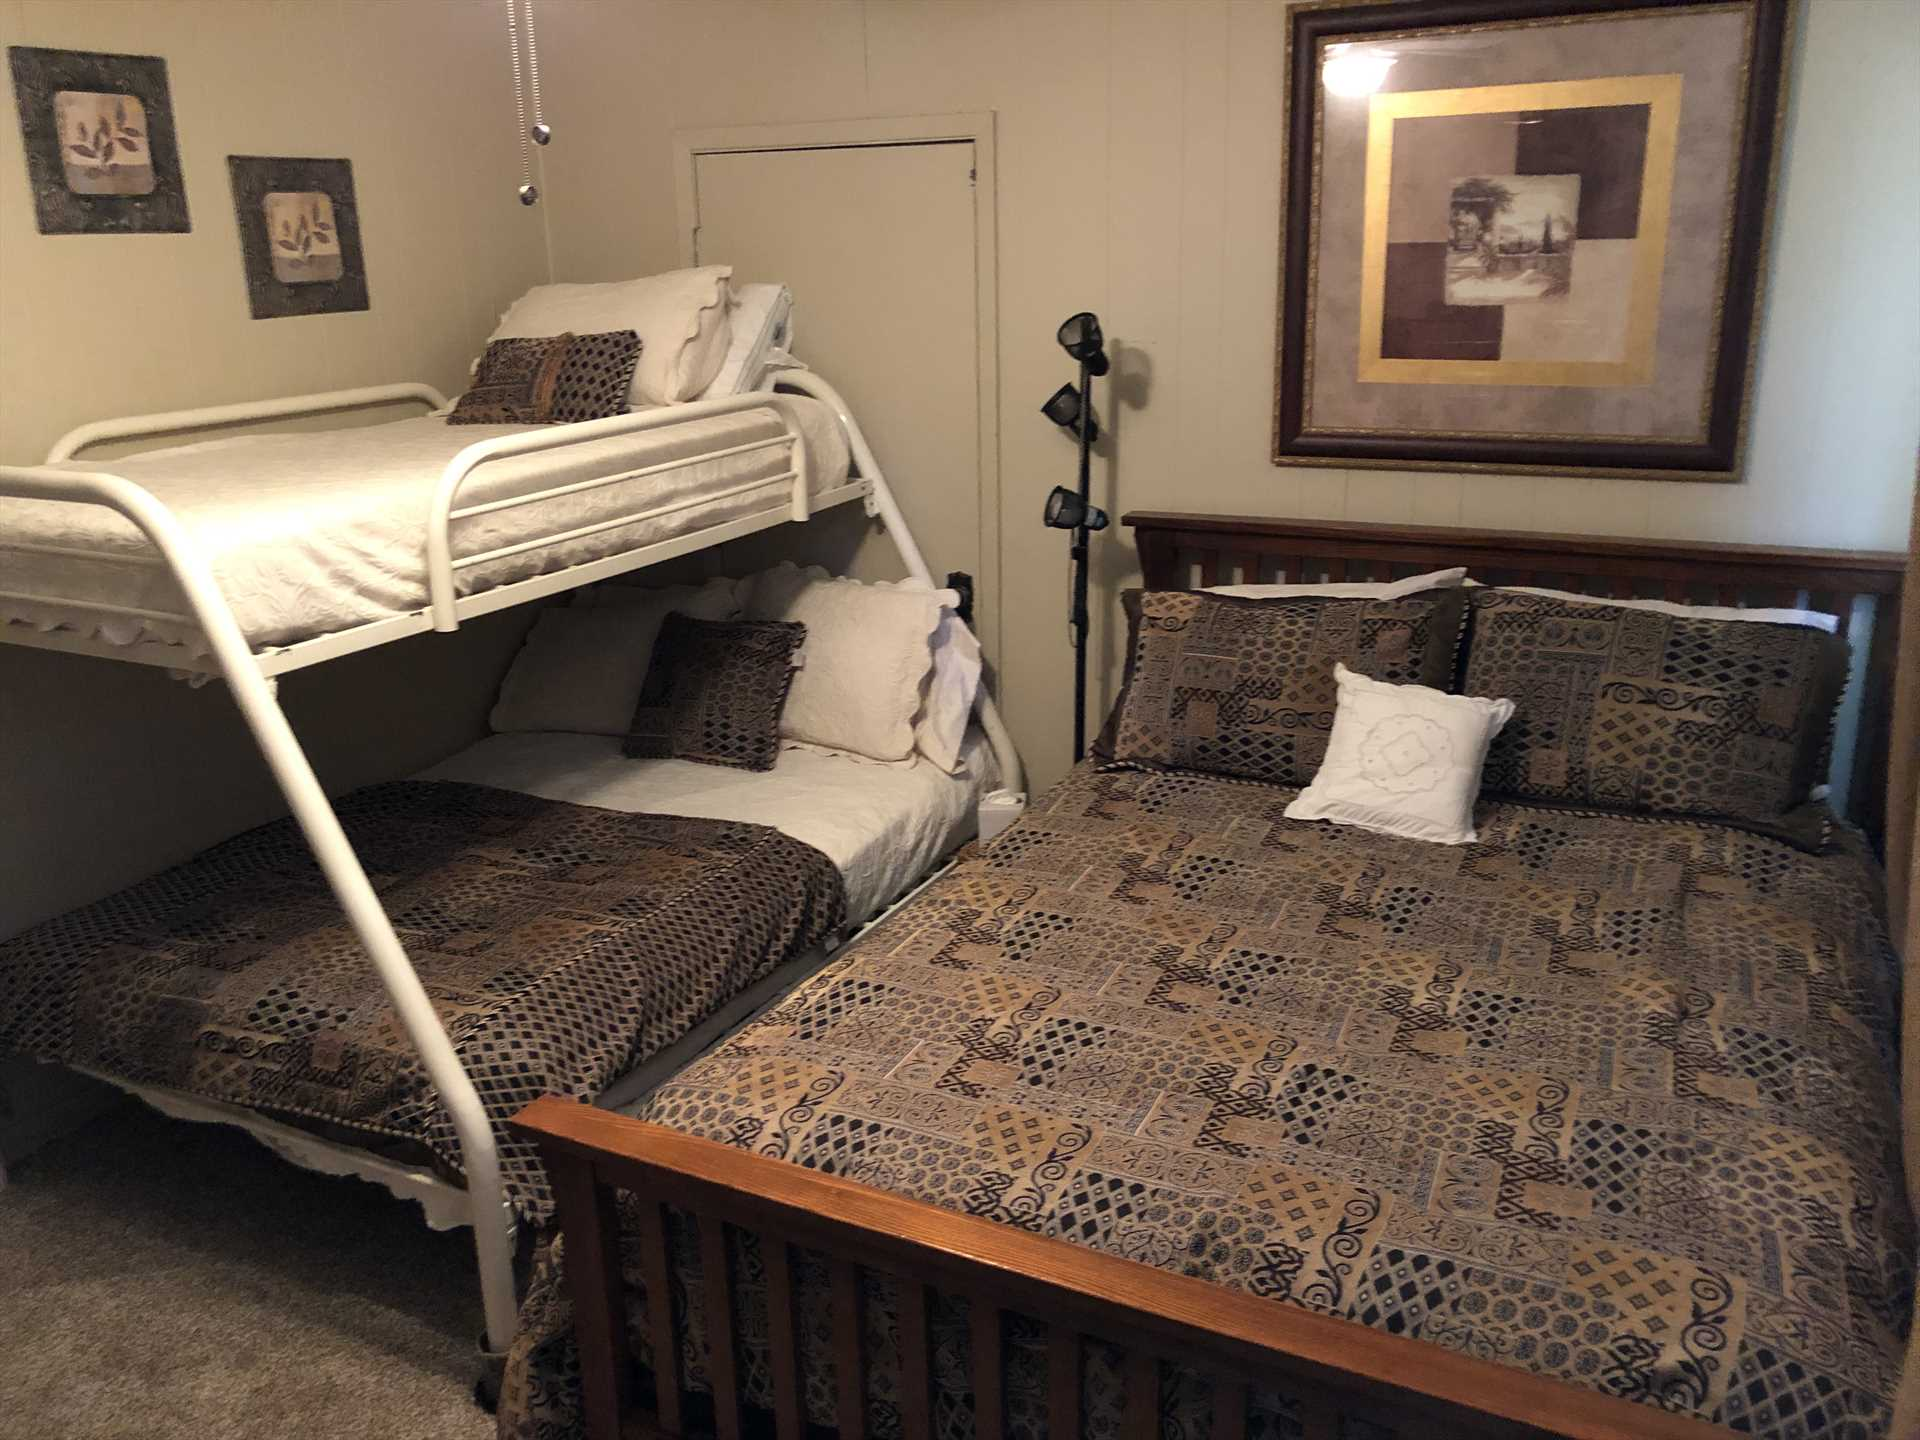 Up to five guests can sleep peacefully in the third bedroom, with a queen bed and a double down/twin up bunk bed. This space serves perfectly as a kids' room!